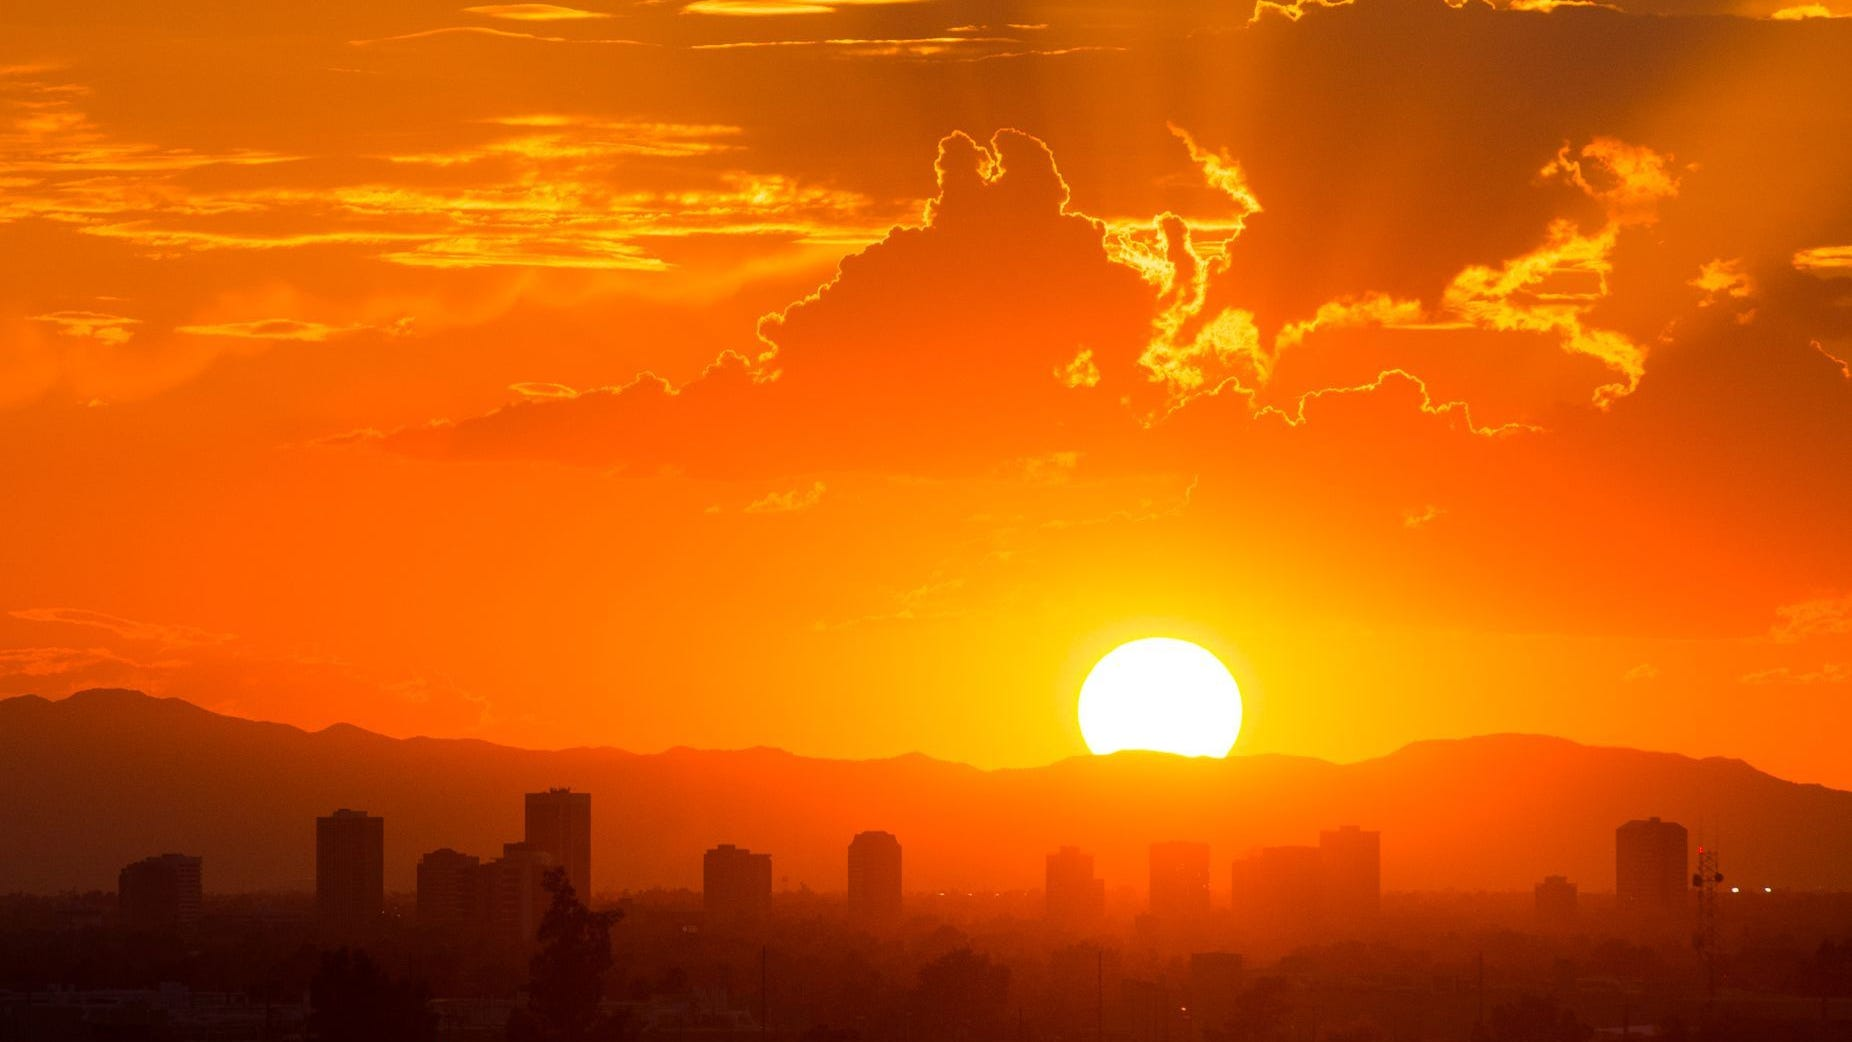 Without action on climate change, heat is projected to become major global killer - AZCentral